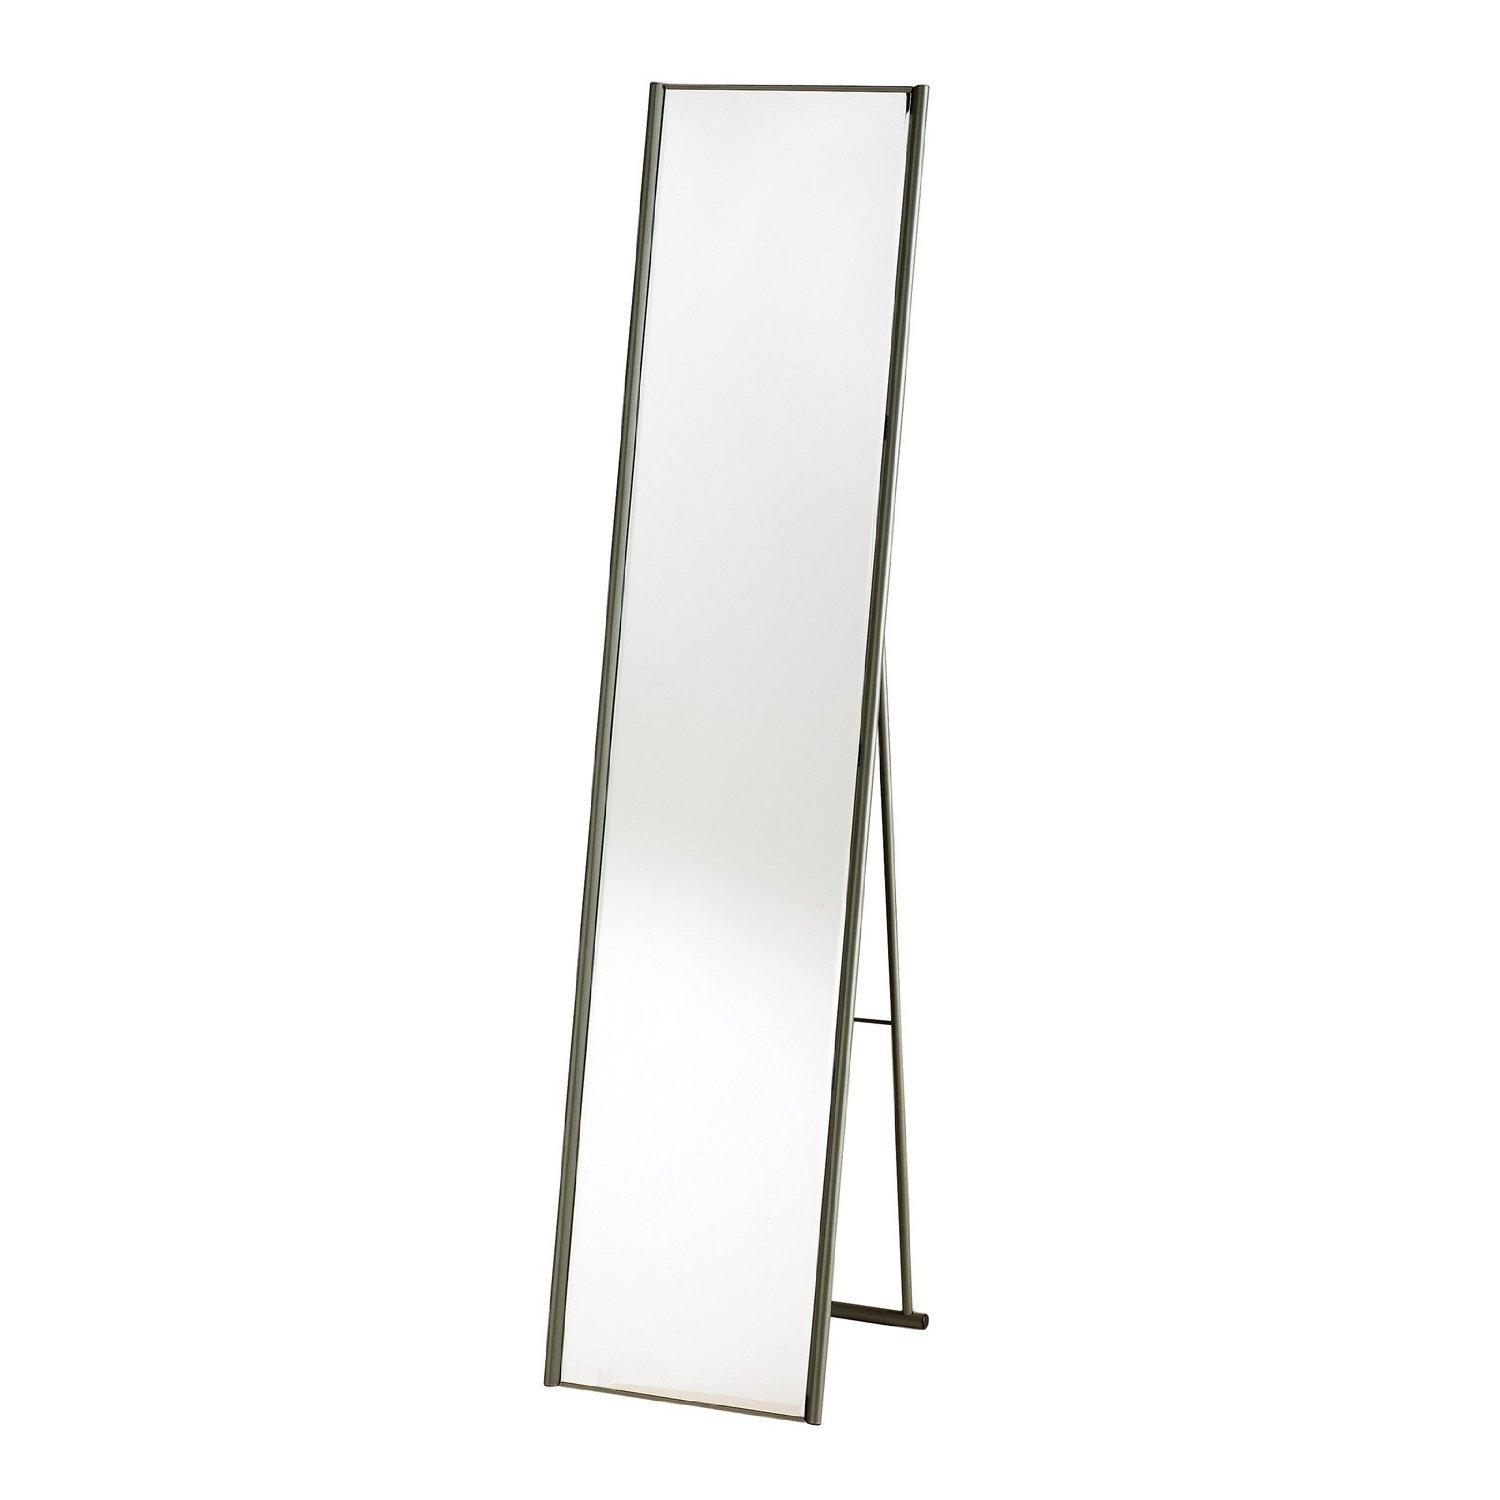 Adesso WK2444-22 Alice Floor Mirror, Steel